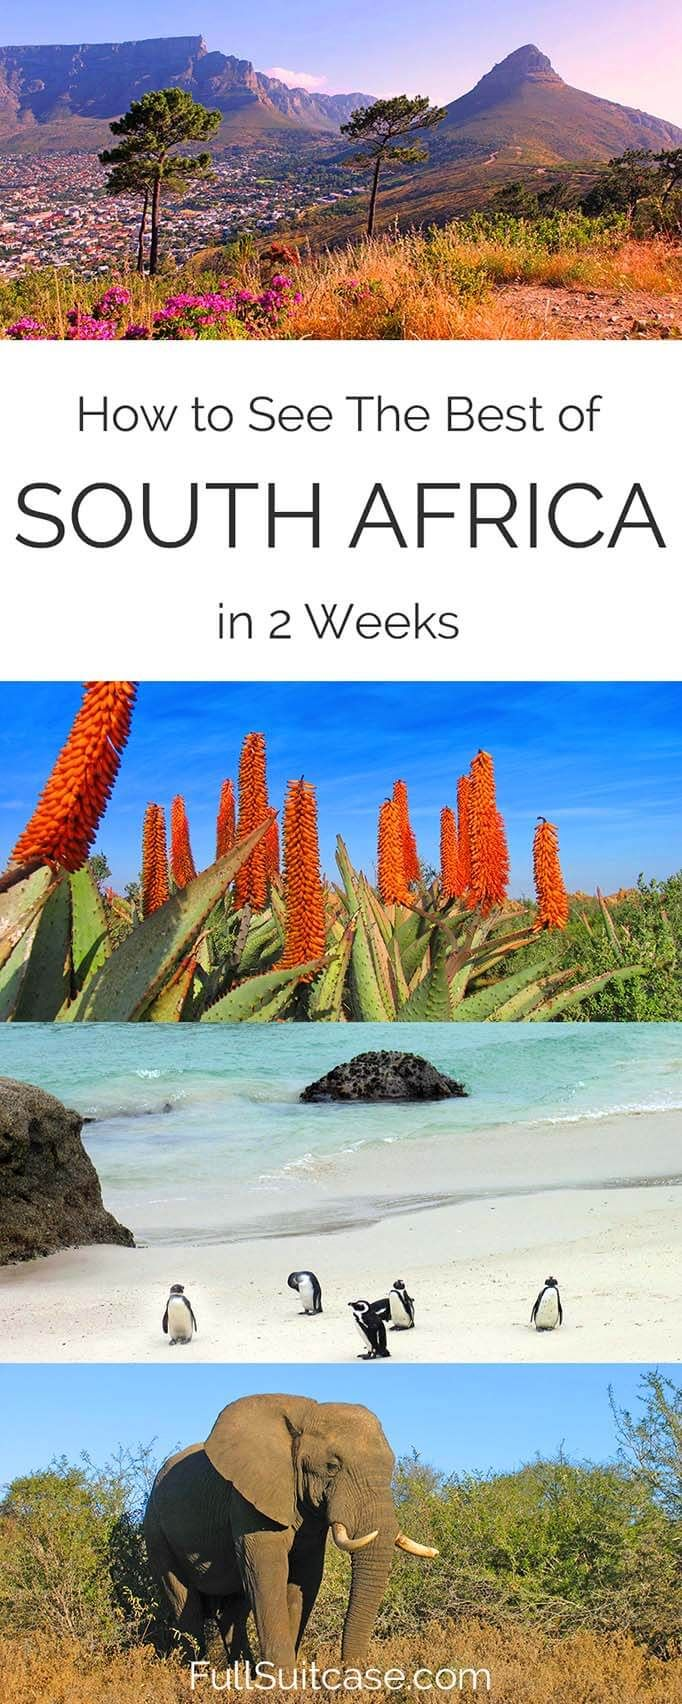 See the best of South Africa with this complete 2 week itinerary from Johannesburg to Cape Town #SouthAfrica